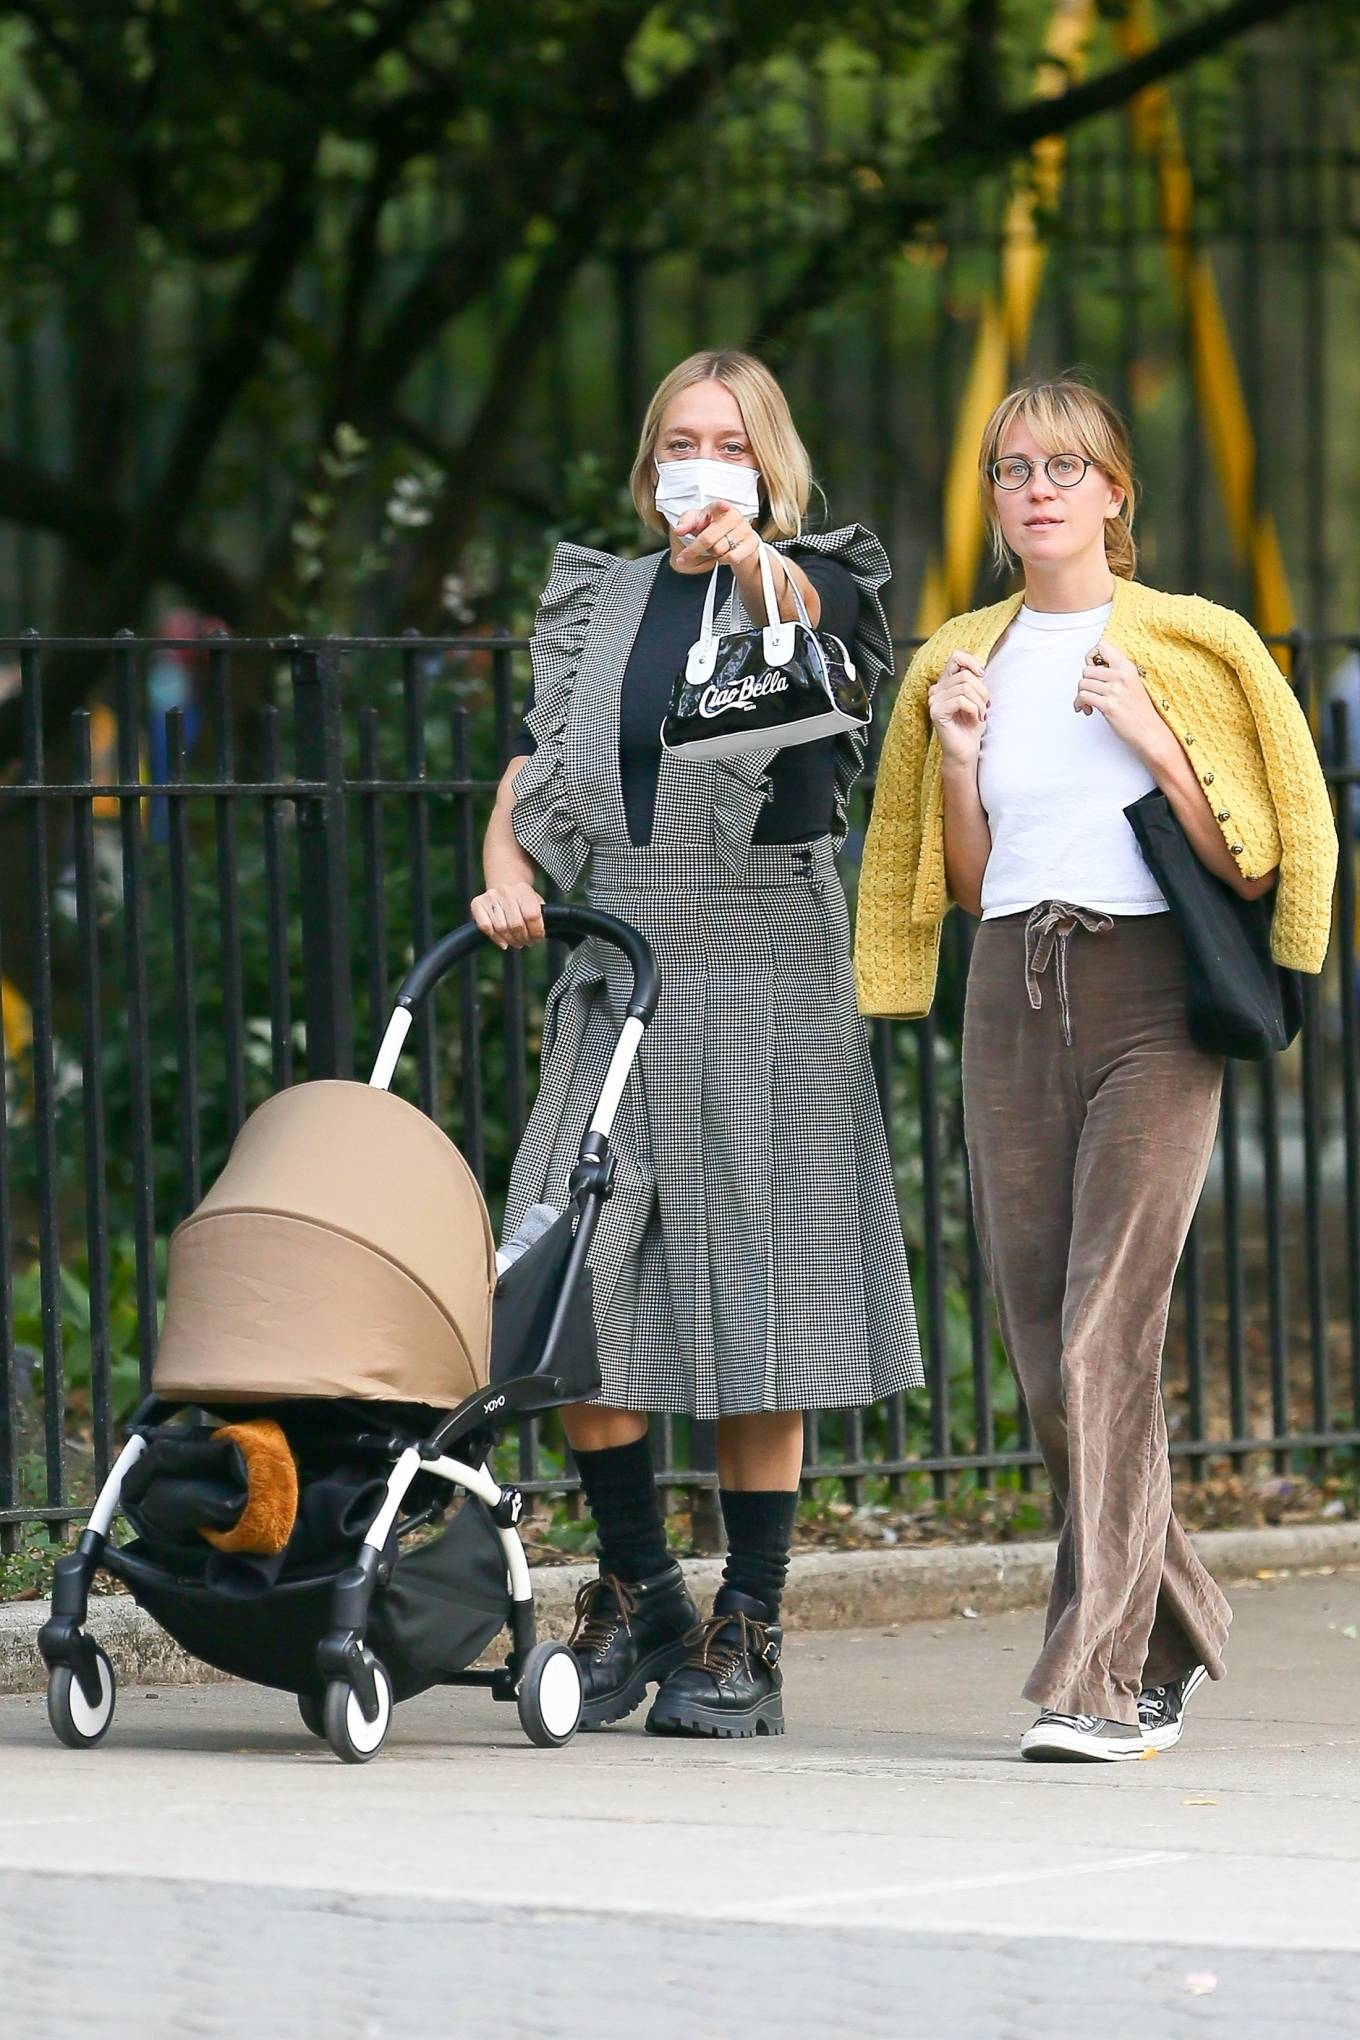 Chloe Sevigny 2020 : Chloe Sevigny – Out for a walk with her baby and a friend in New York-02